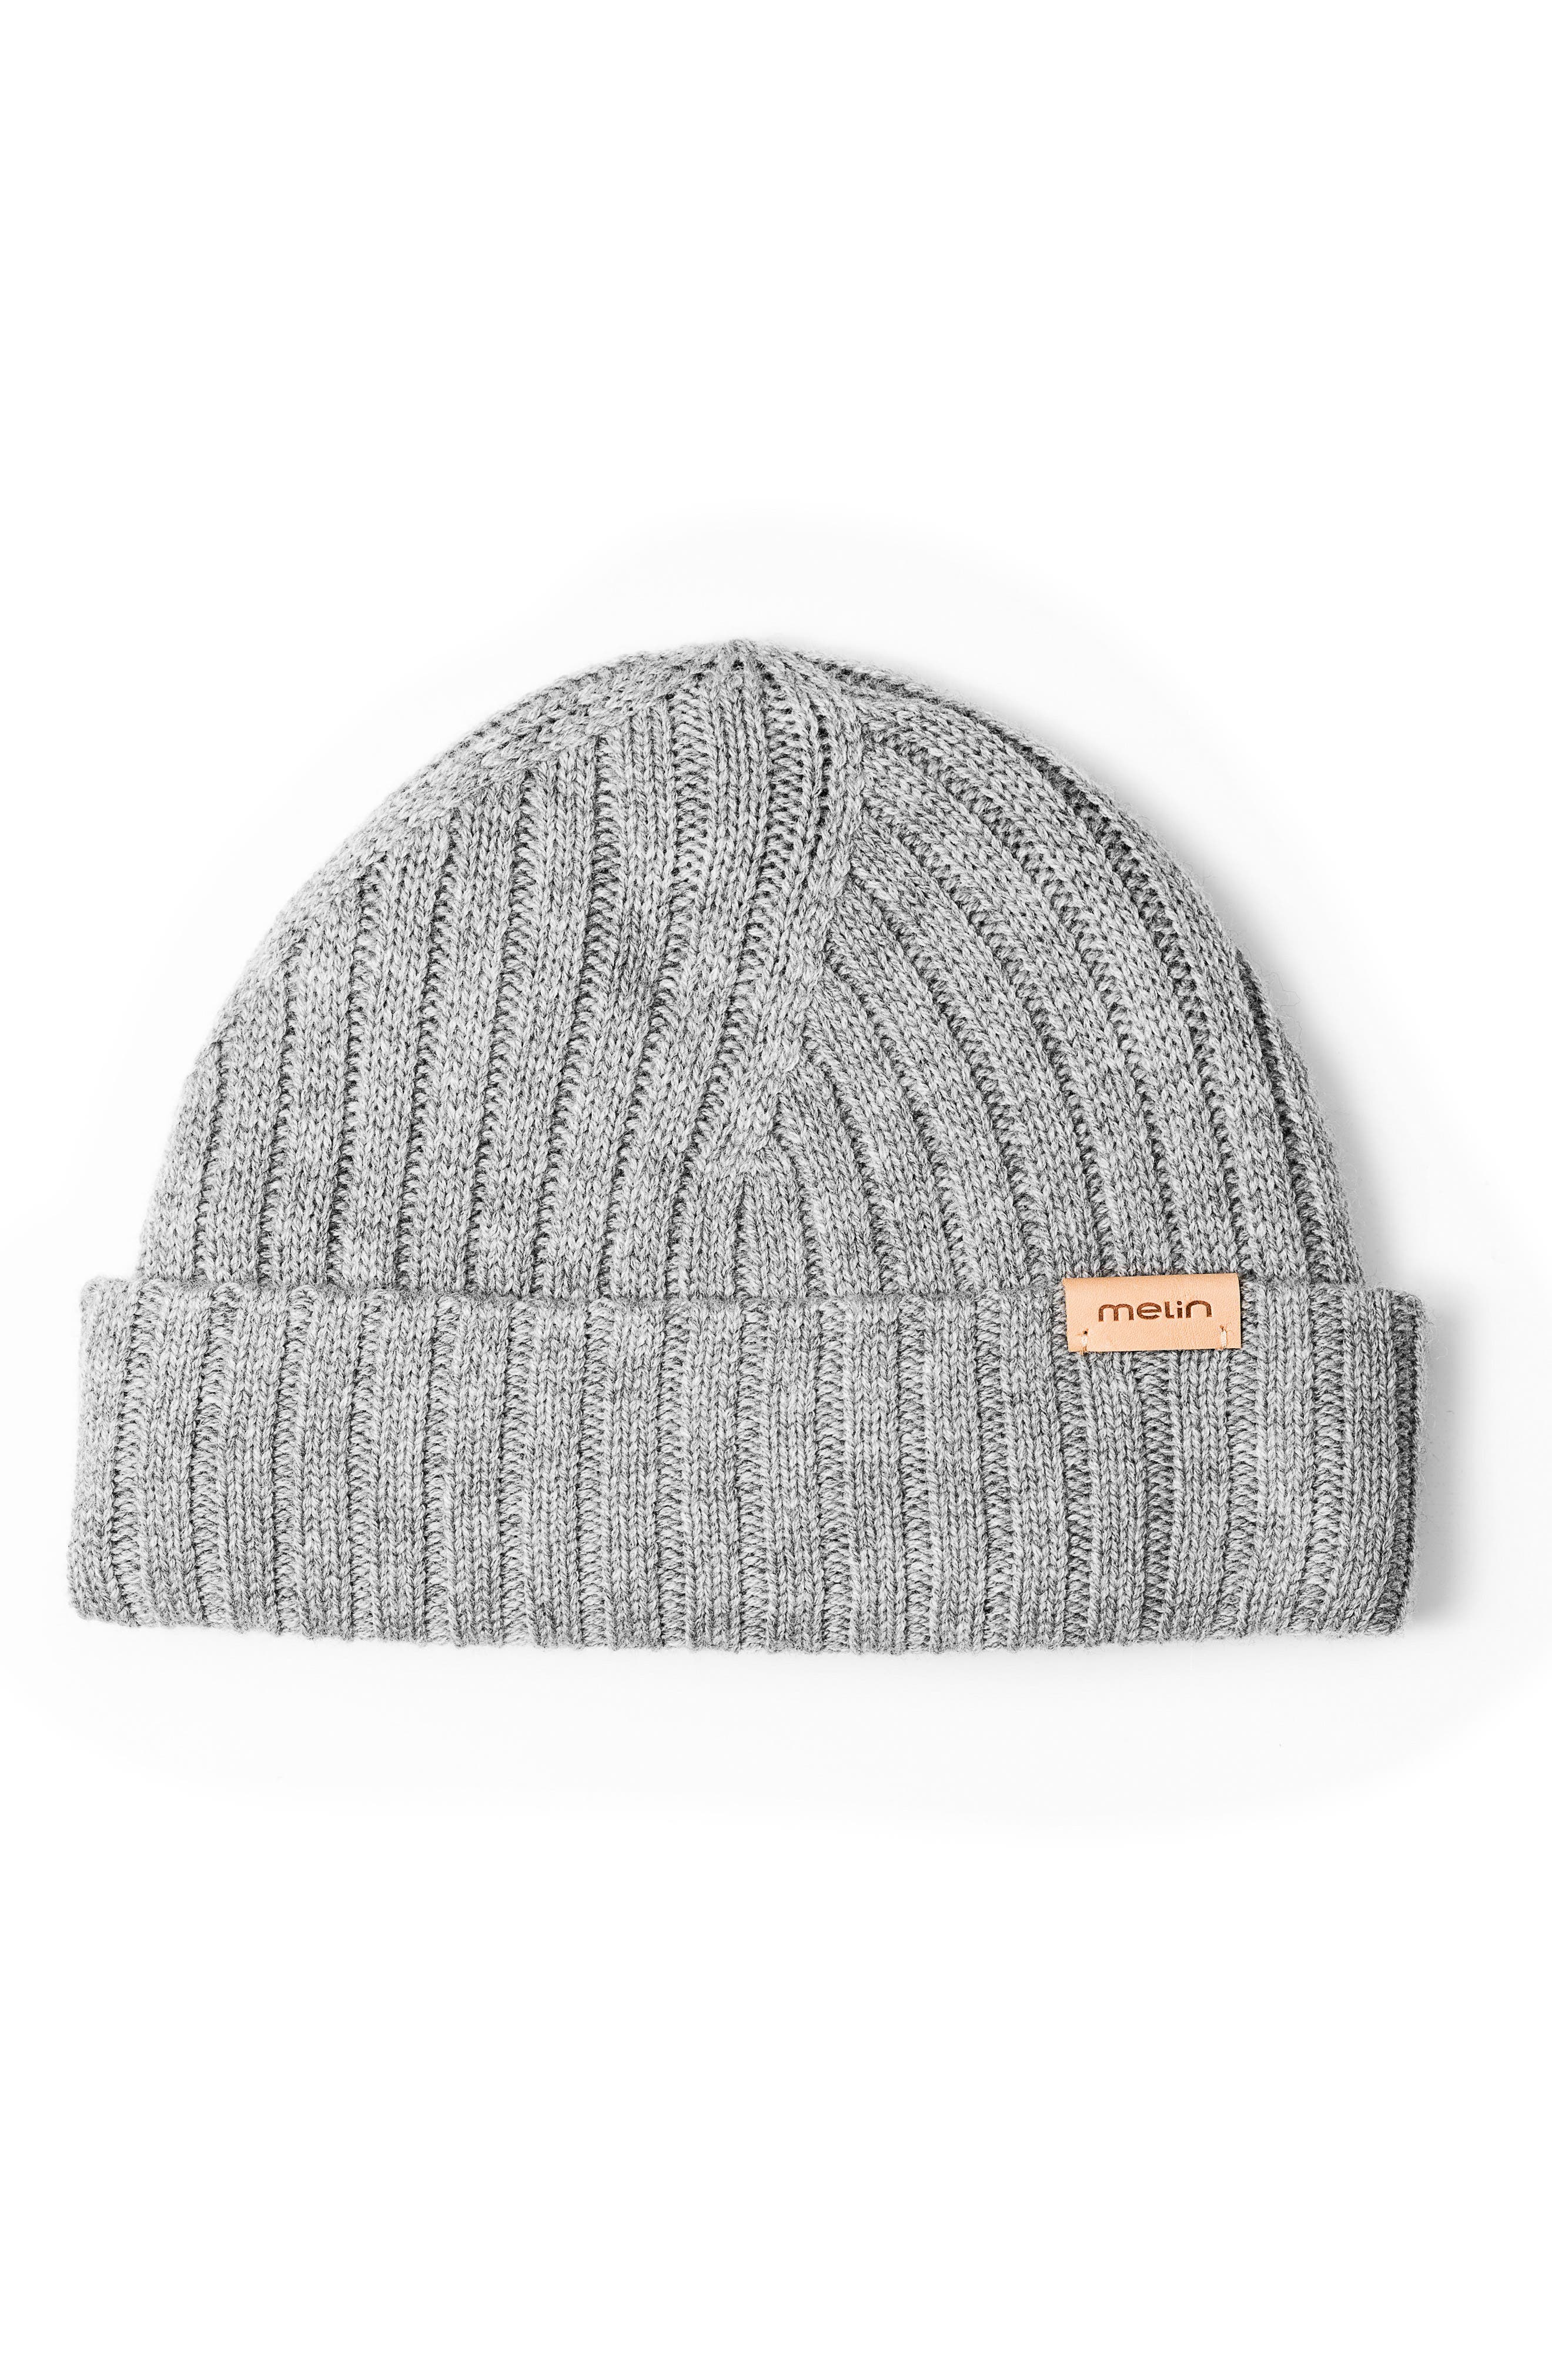 All Day Beanie,                         Main,                         color, Heather Grey